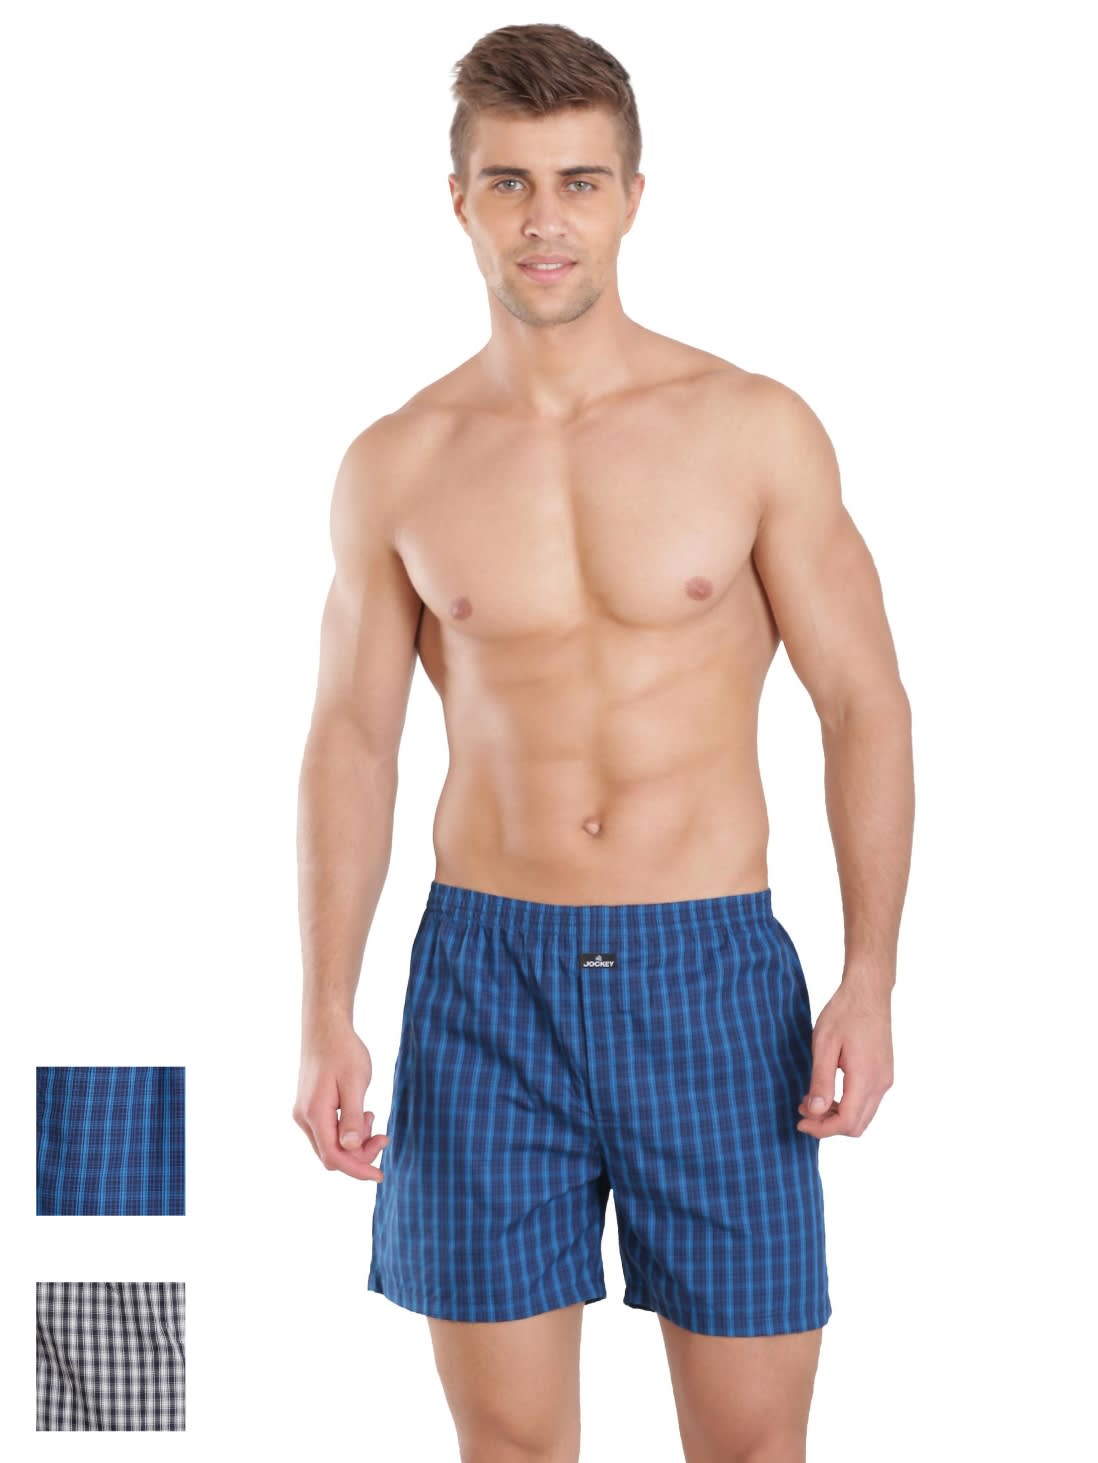 Dark & Light Assorted Check Boxer Shorts Combo - Pack of 2